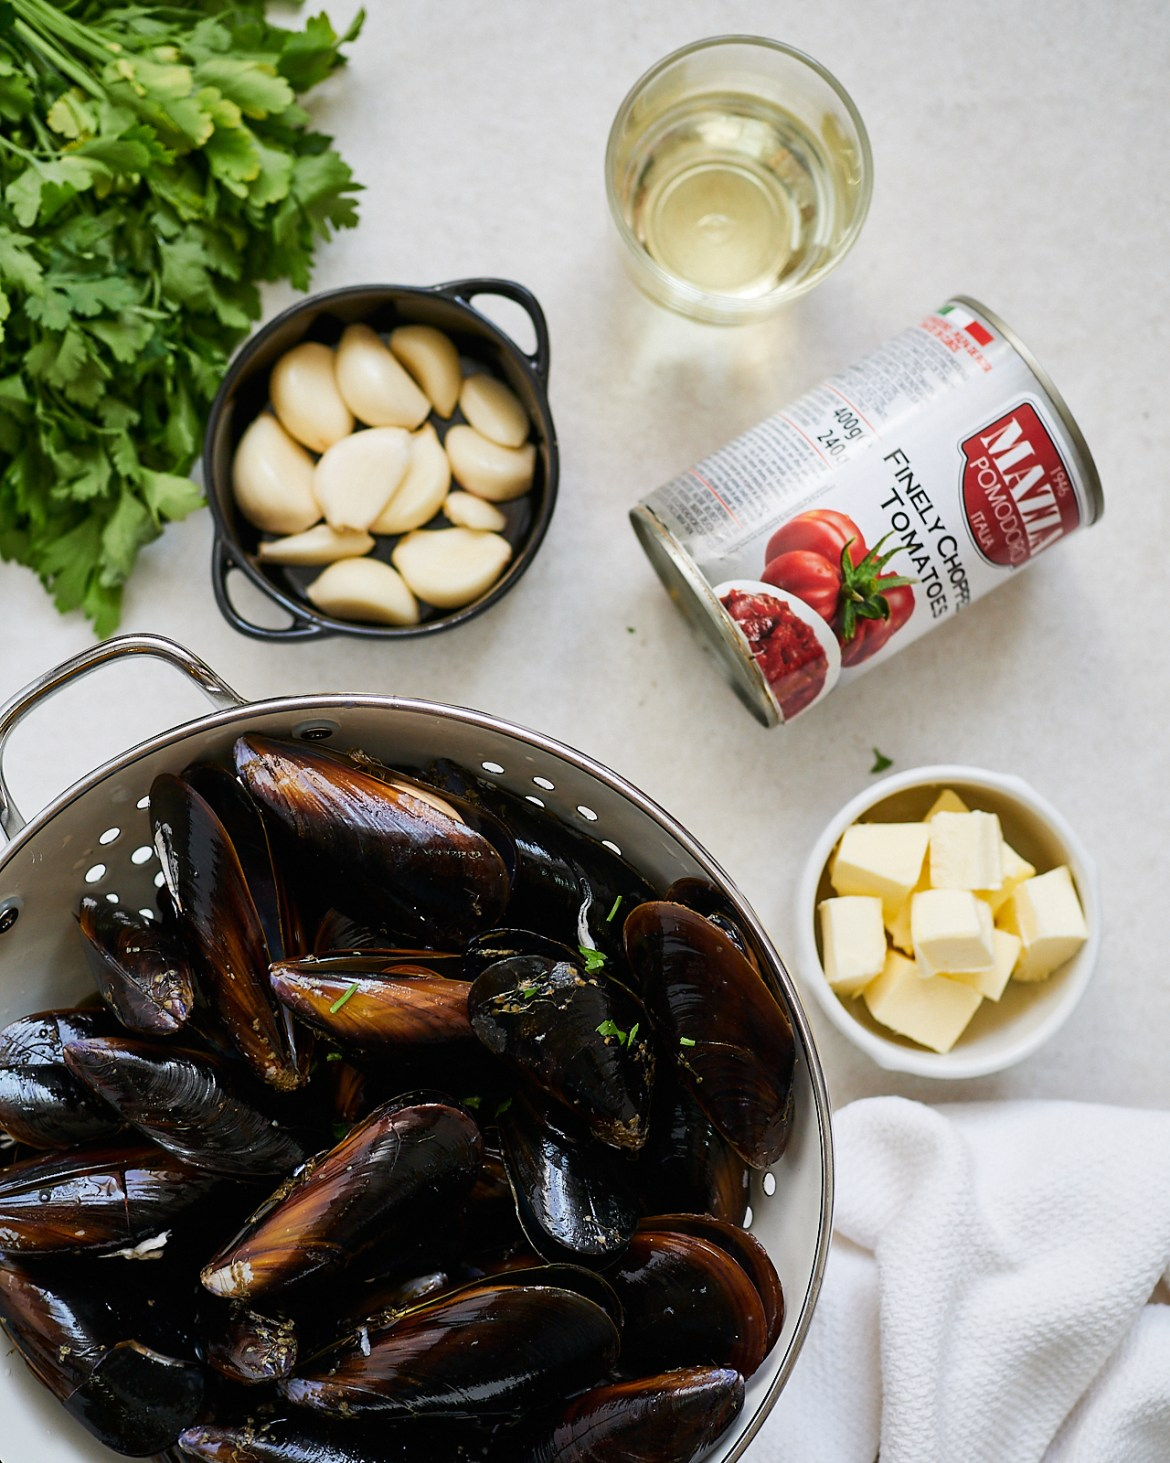 ingredients for mussels in tomato sauce